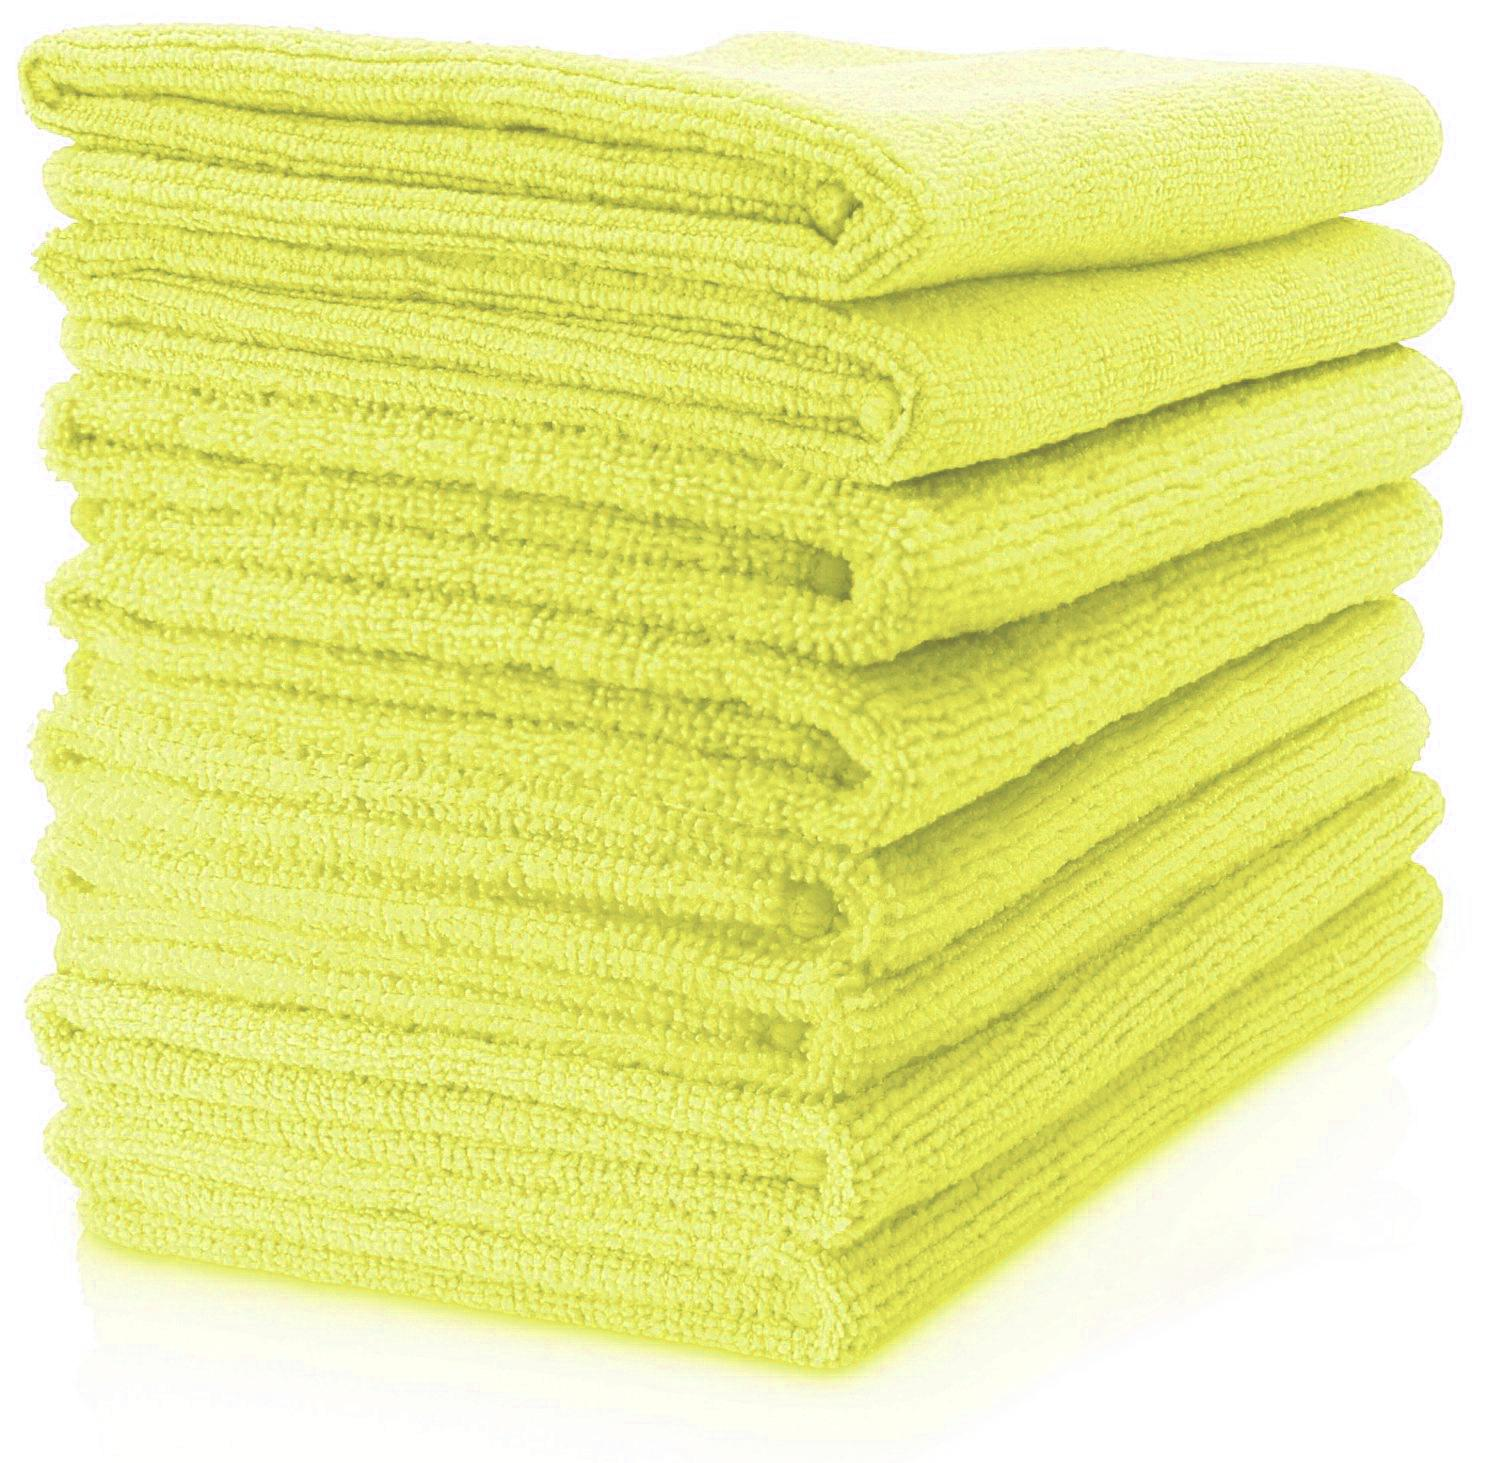 Maxigleam® Yellow Microfibre Cloths Pack of 50 Cloths 40x40cms